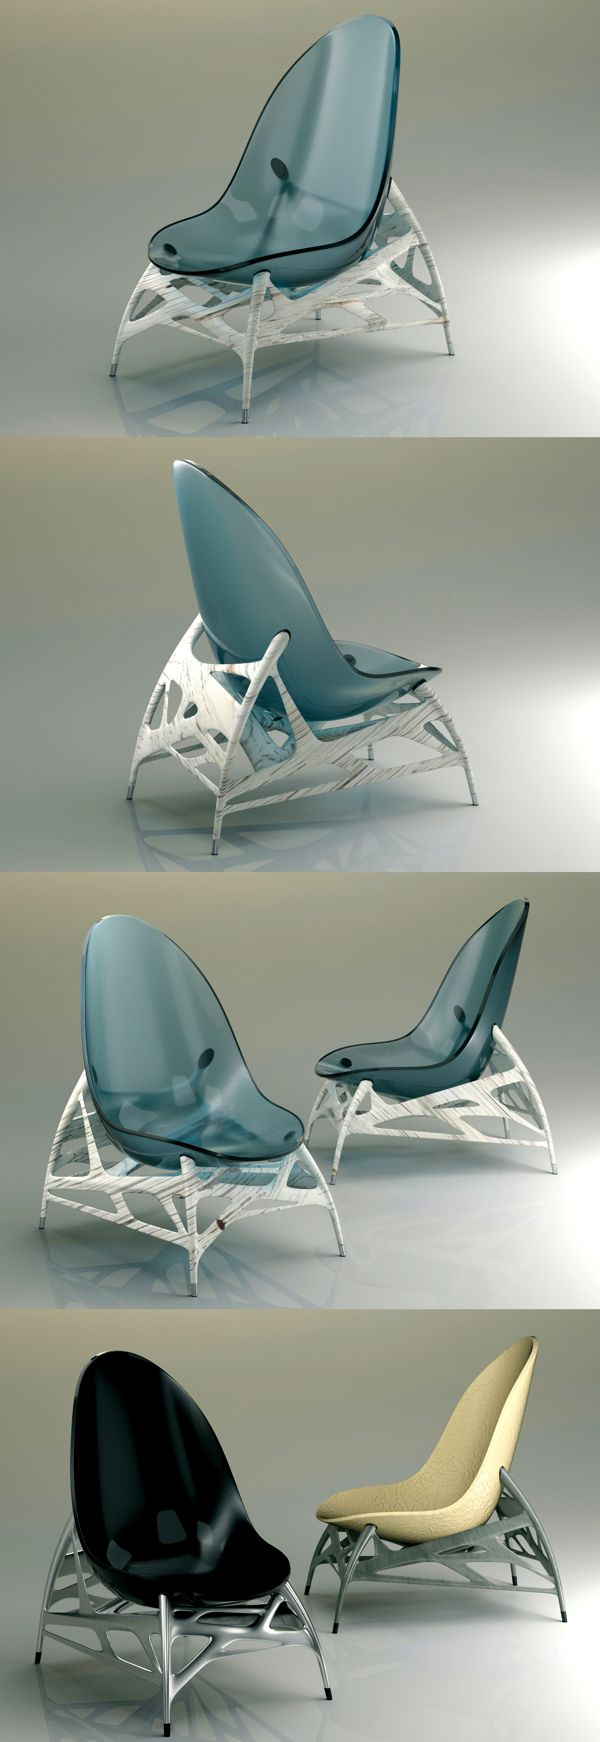 Großartig CONCEPT DESIGN CHAIR By Paweł Czyżewski, Via Behance